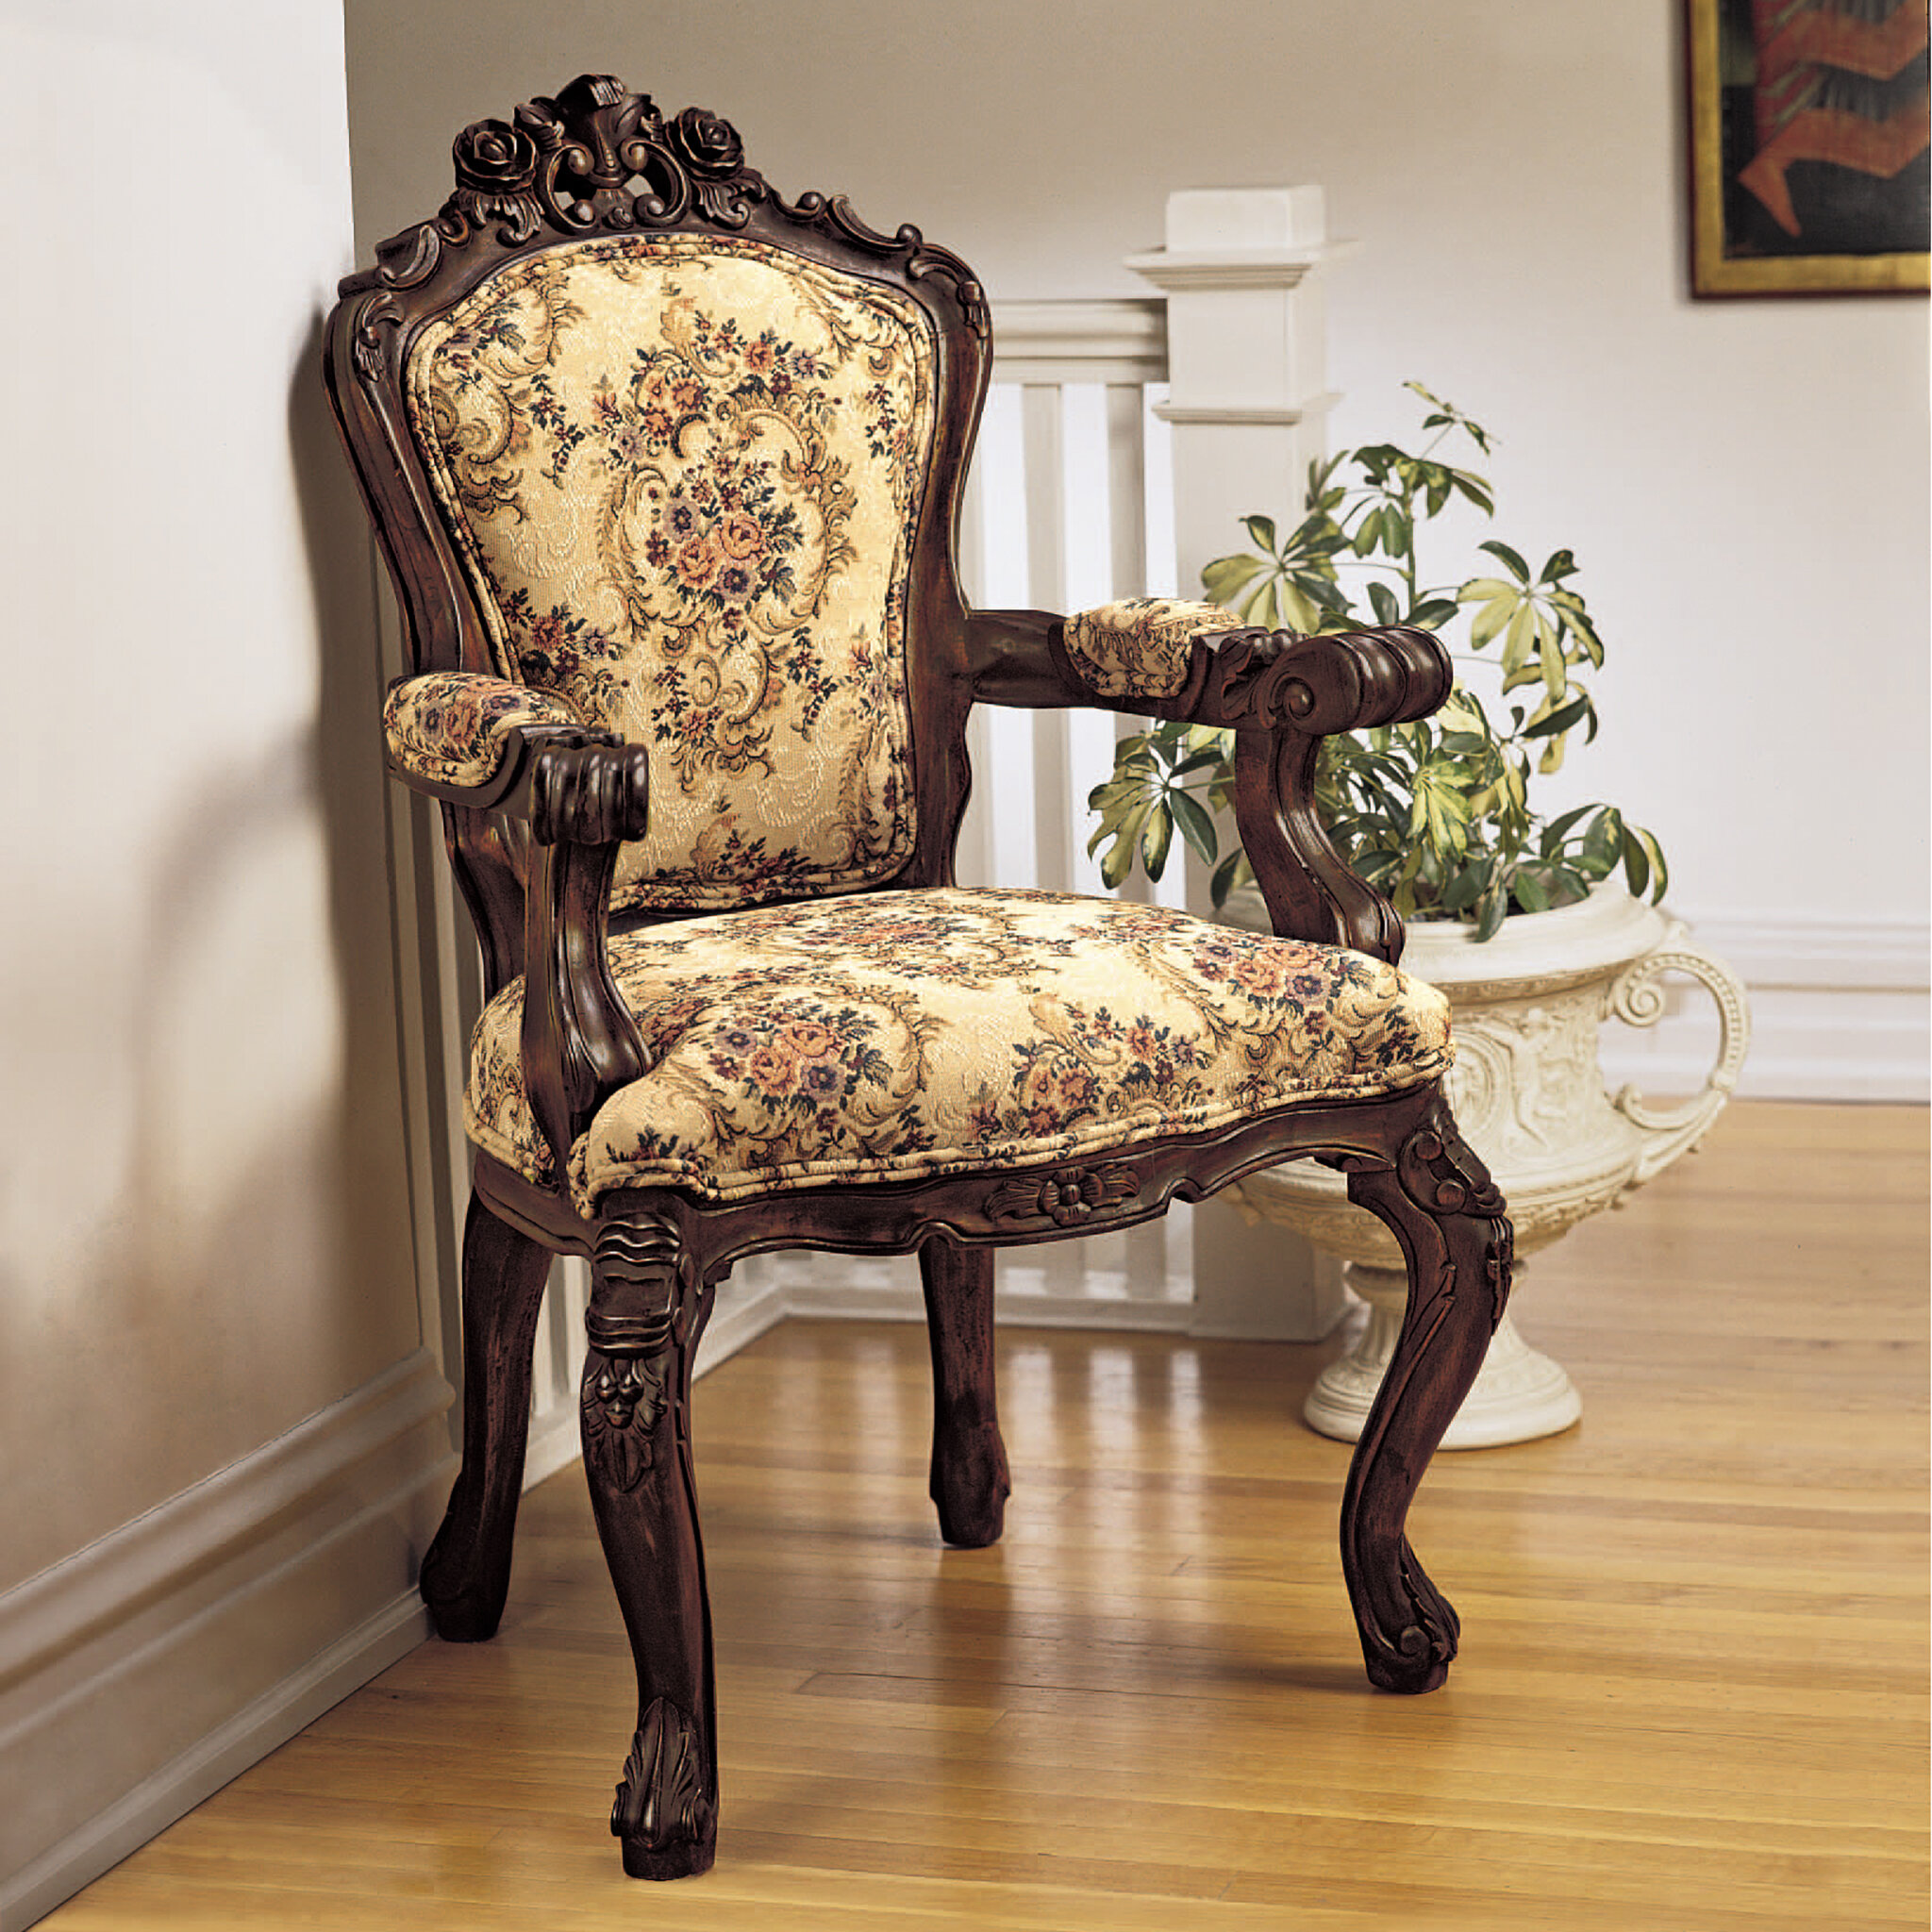 Design Toscano Antique Armchair & Reviews | Wayfair.ca